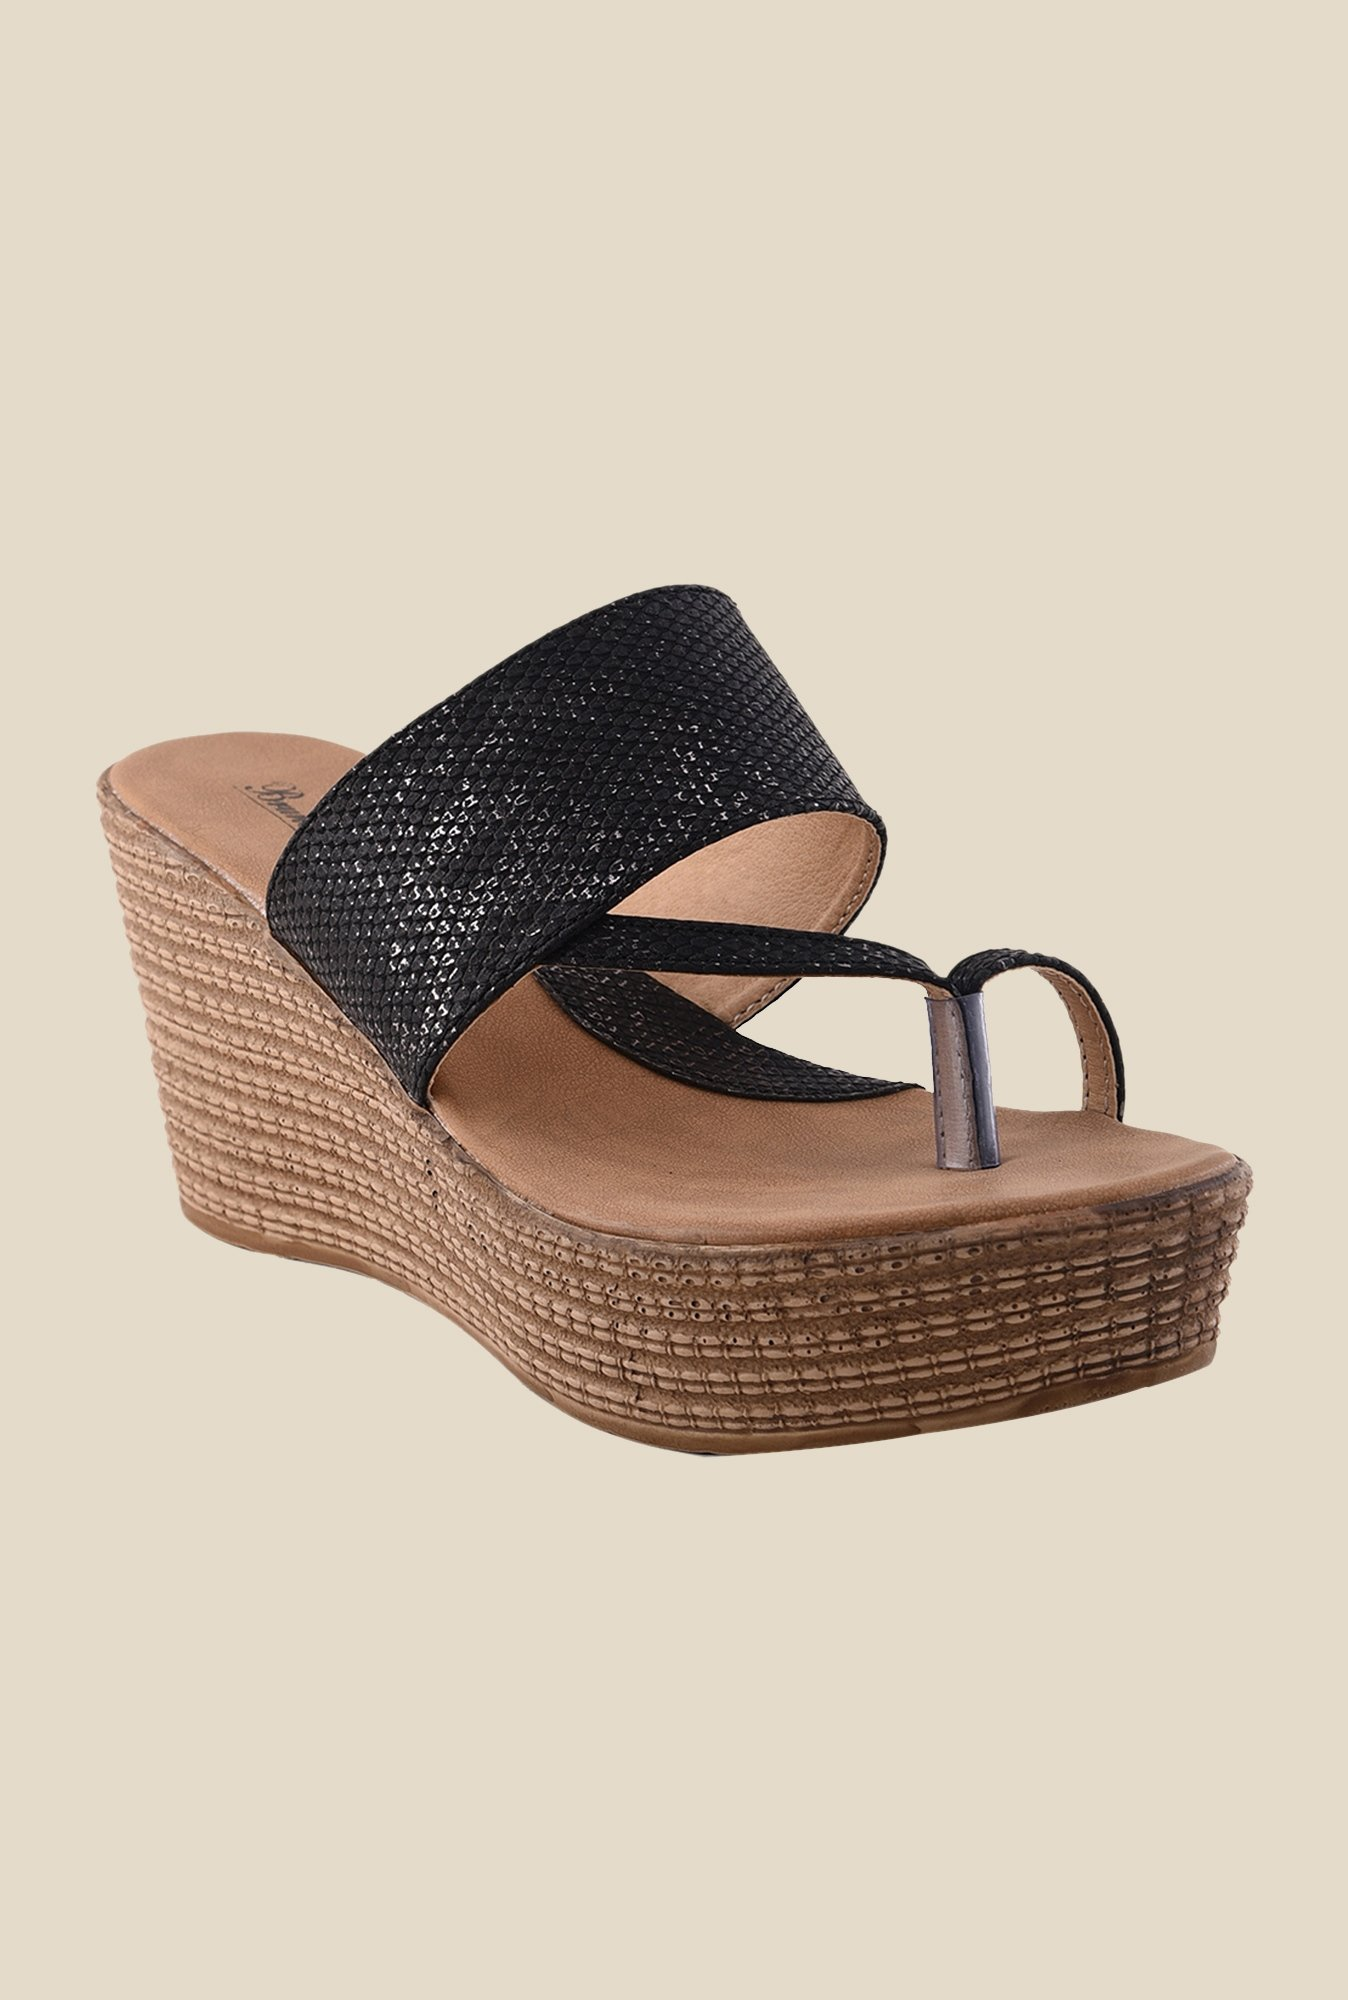 Bruno Manetti Black Toe Ring Wedges